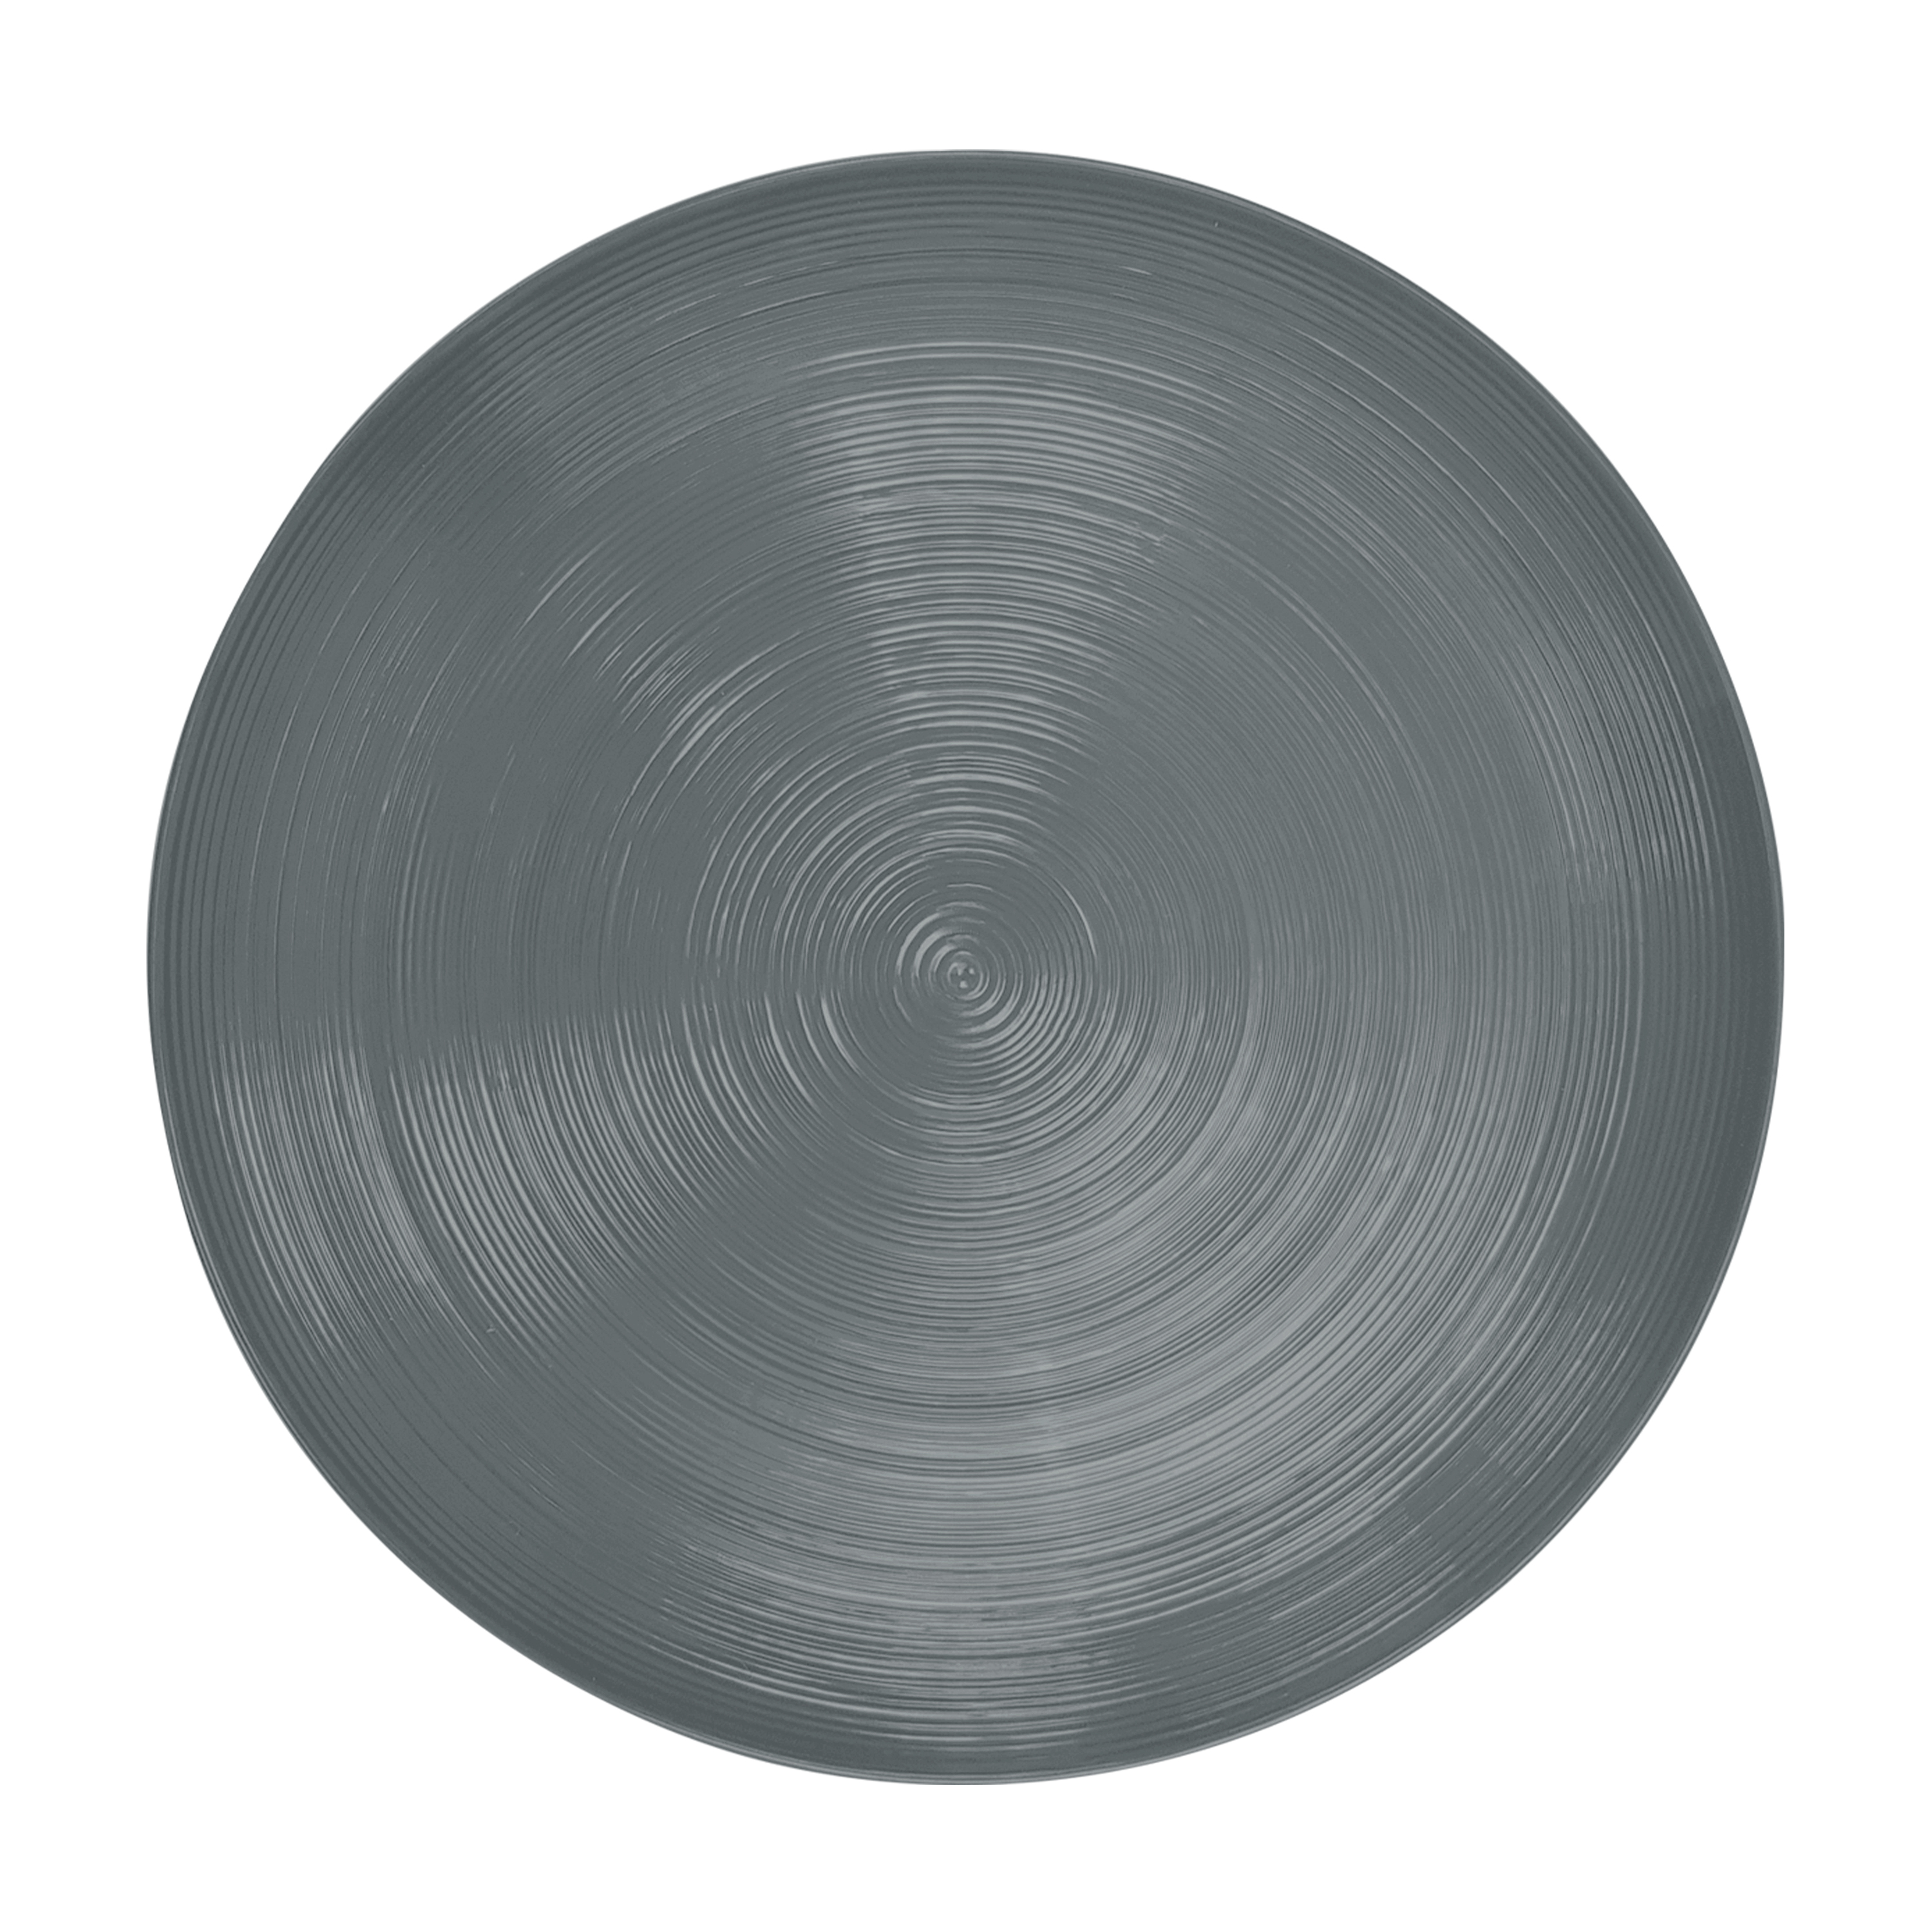 American Conventional Plate & Bowl Sets, Charcoal, 12-piece set slideshow image 12